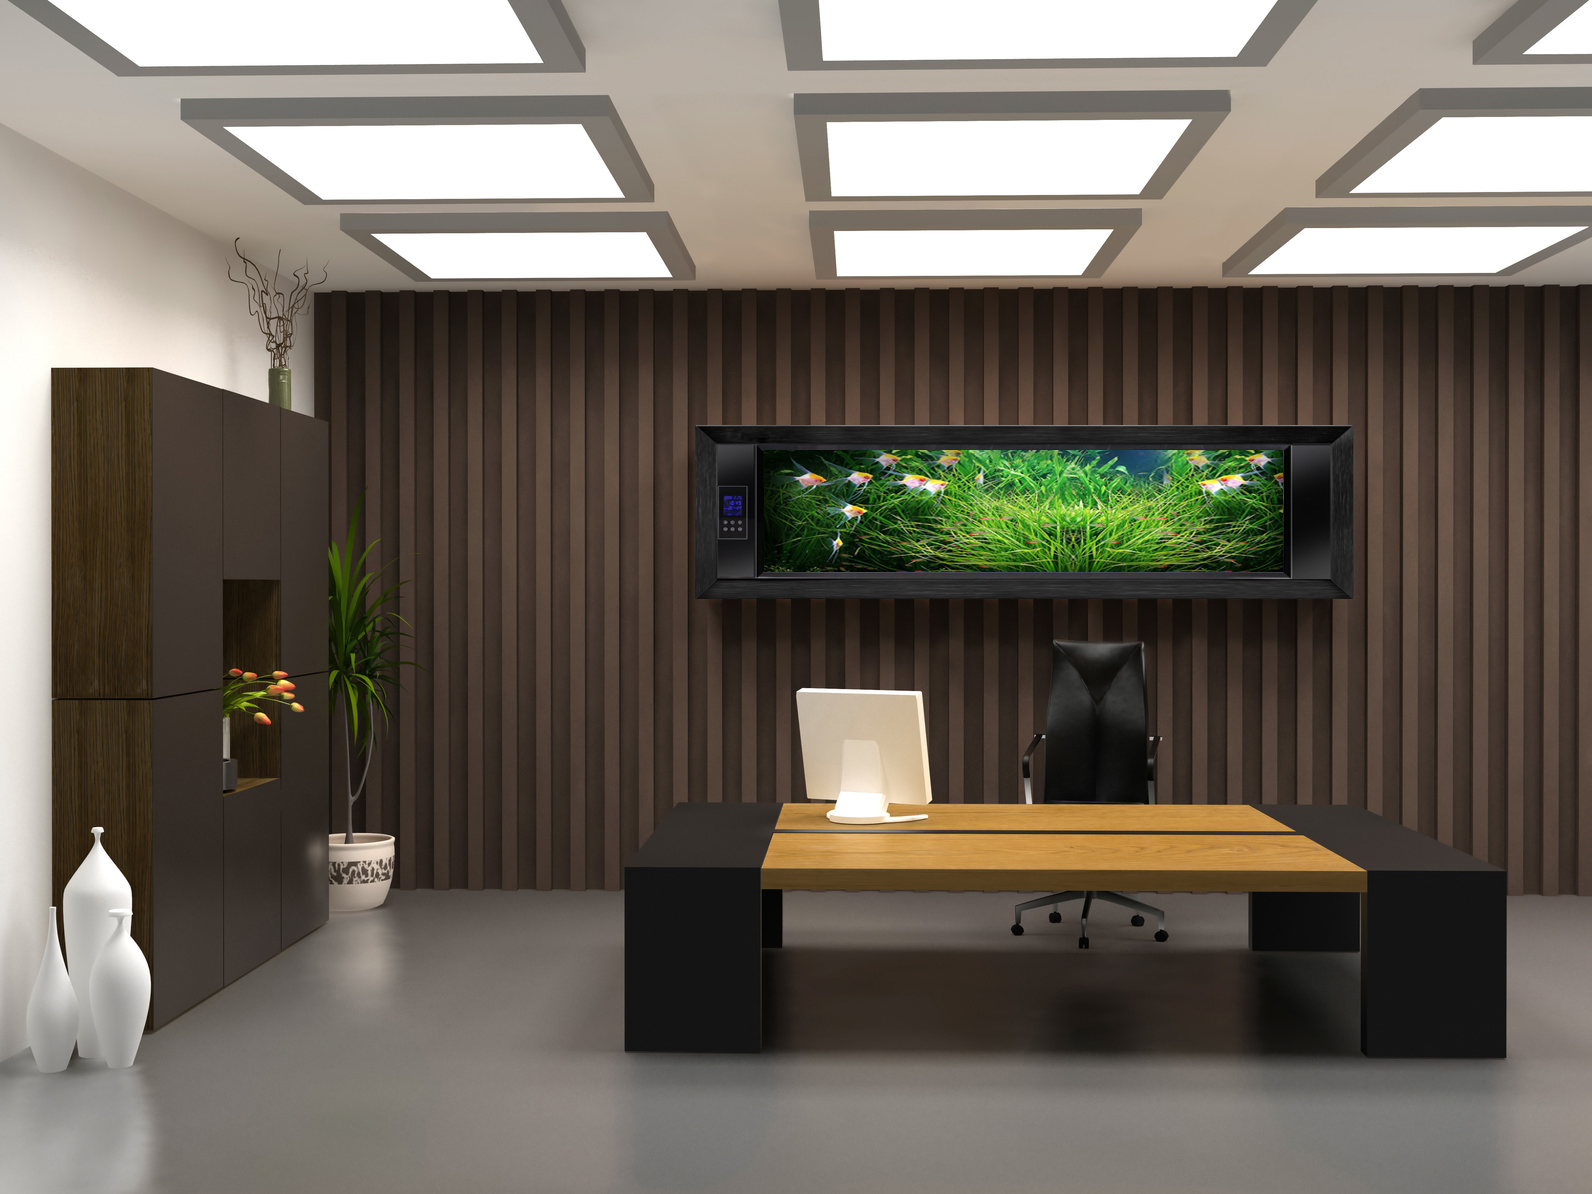 Elegant ceo office design bellisima - Luxurious interior design with modern glass and modular metallic theme ...